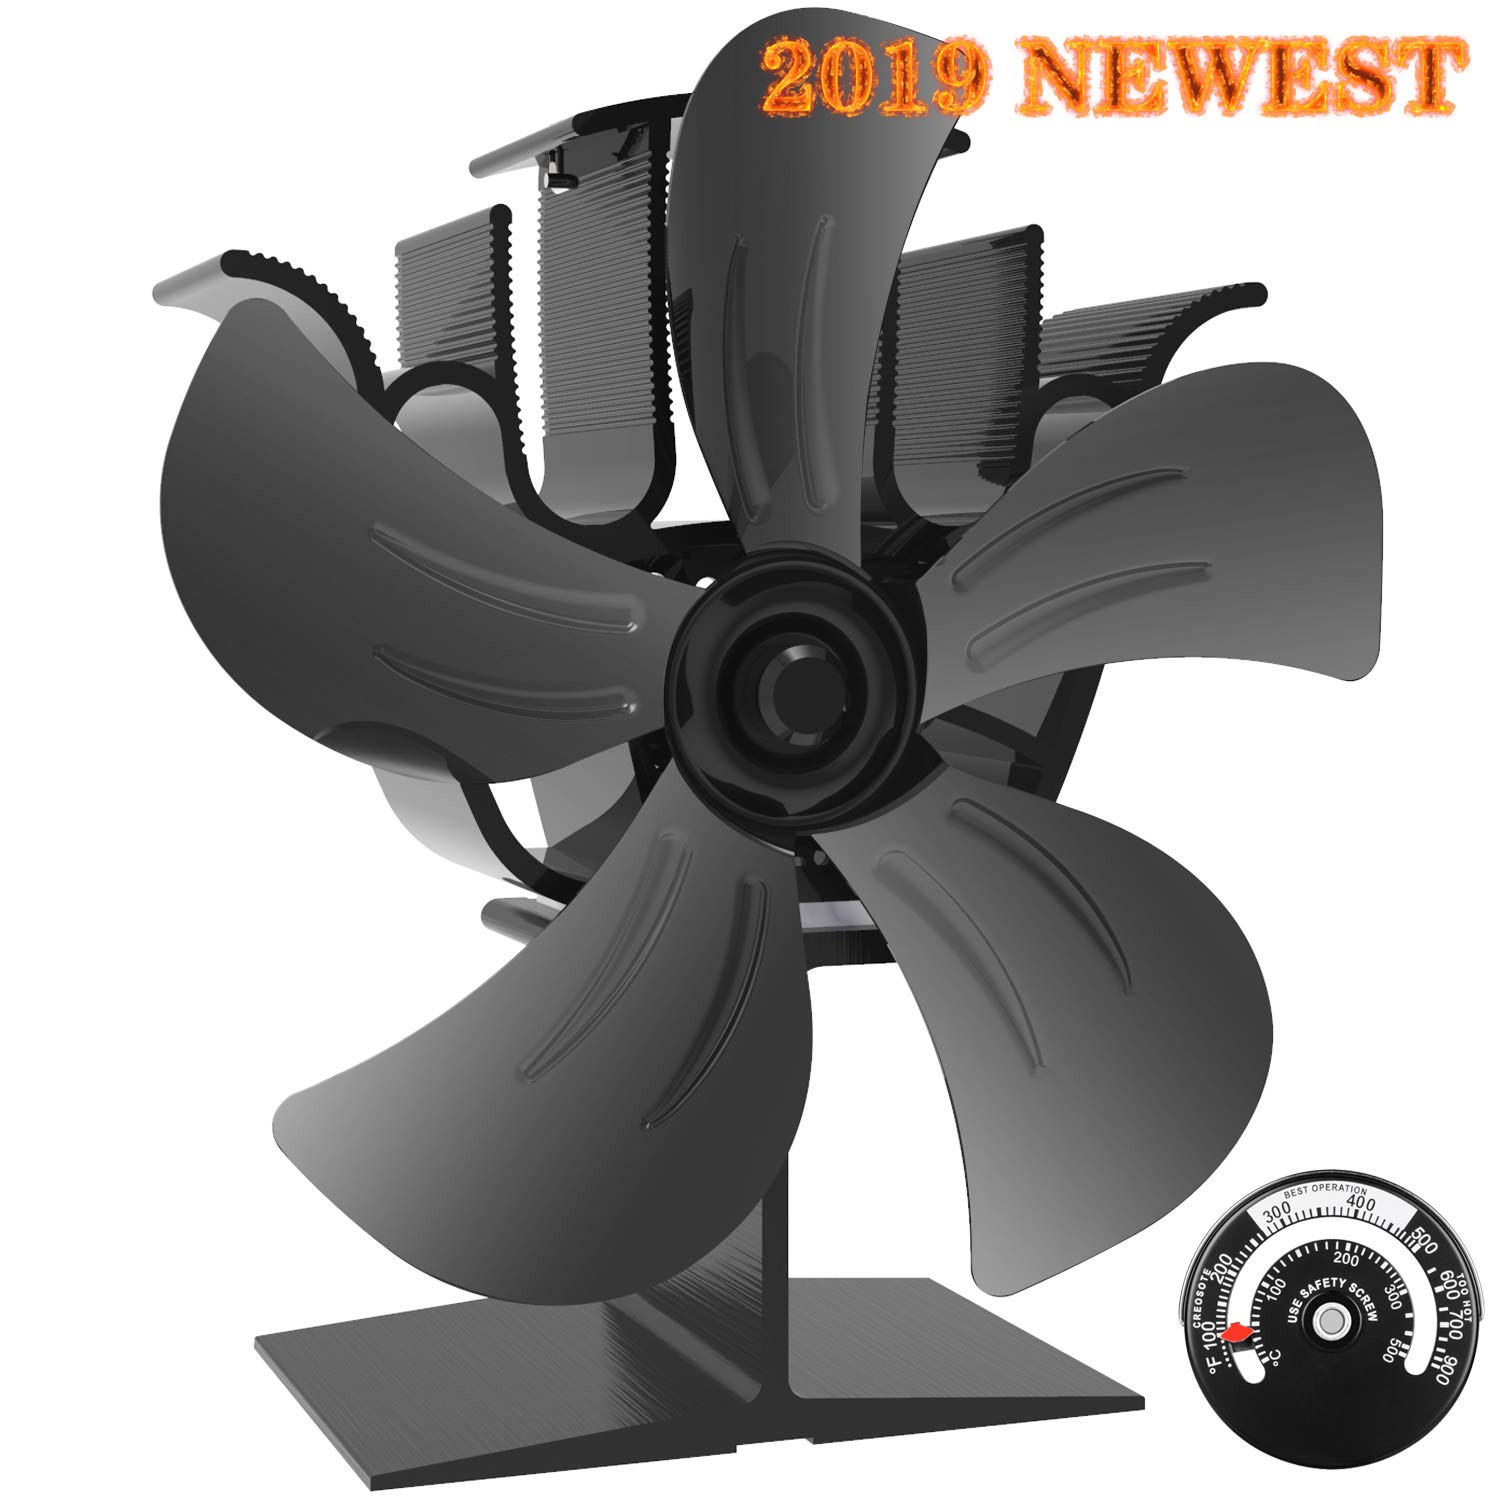 KINDEN Wood Burner Fan 5-Blade Heat Powered Stove Fan for Wood Log Ultra Quiet Increases 80% More Warm Air Than 2 Blade Eco-Friendly with Stove Thermometer (Aluminium Black,Large Size) by KINDEN